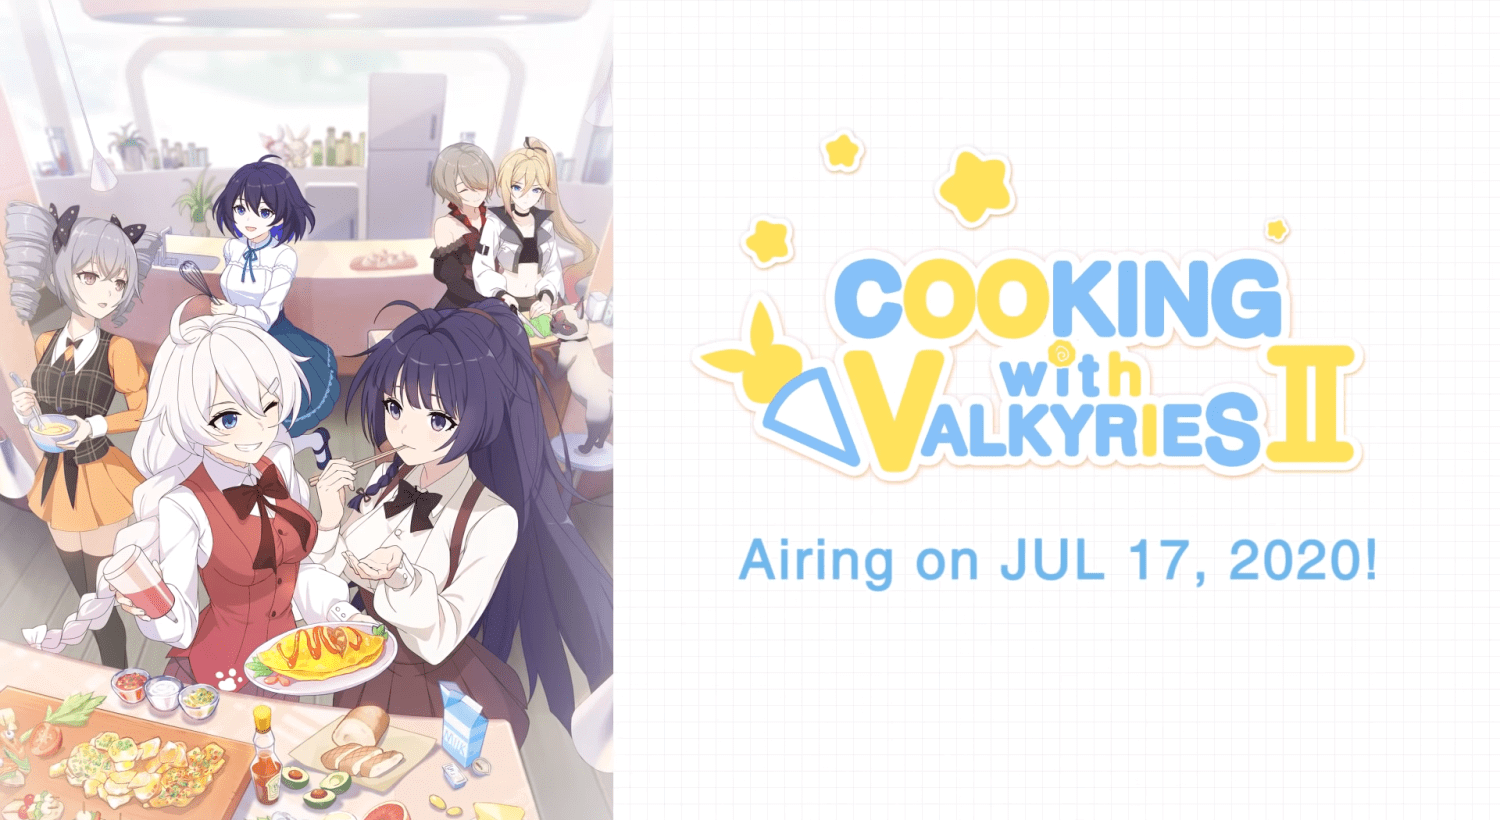 Cooking with Valkyries Season 2 Episode 02 Subtitle Indonesia